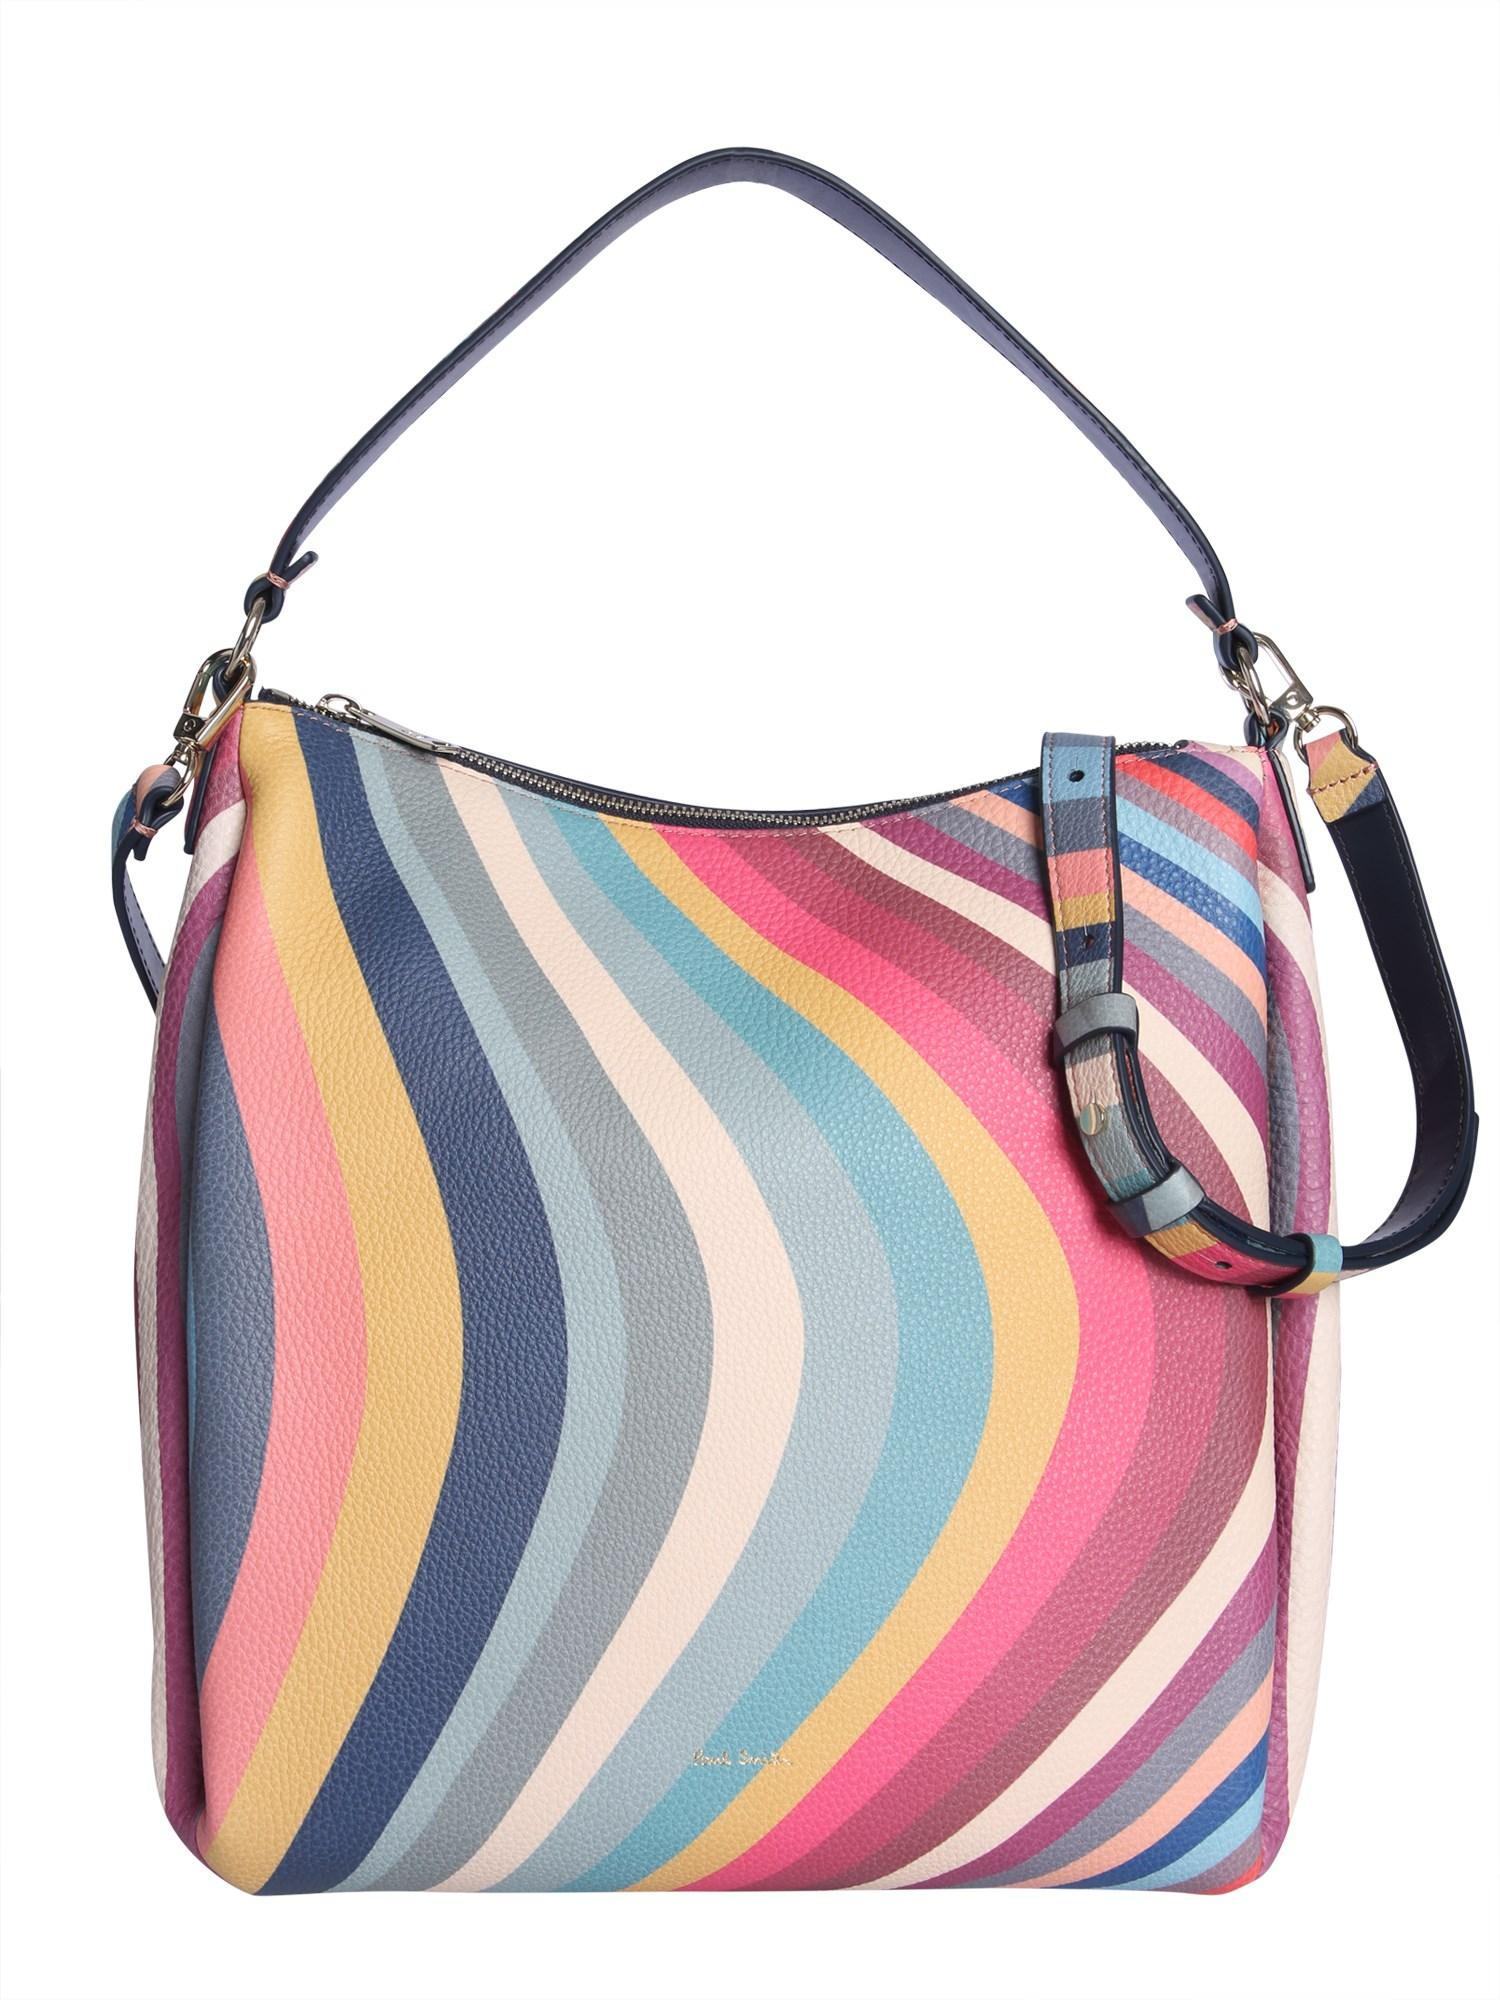 5b221f7e2 Lyst - Paul Smith Leather Shoulder Bag in Blue - Save 20%